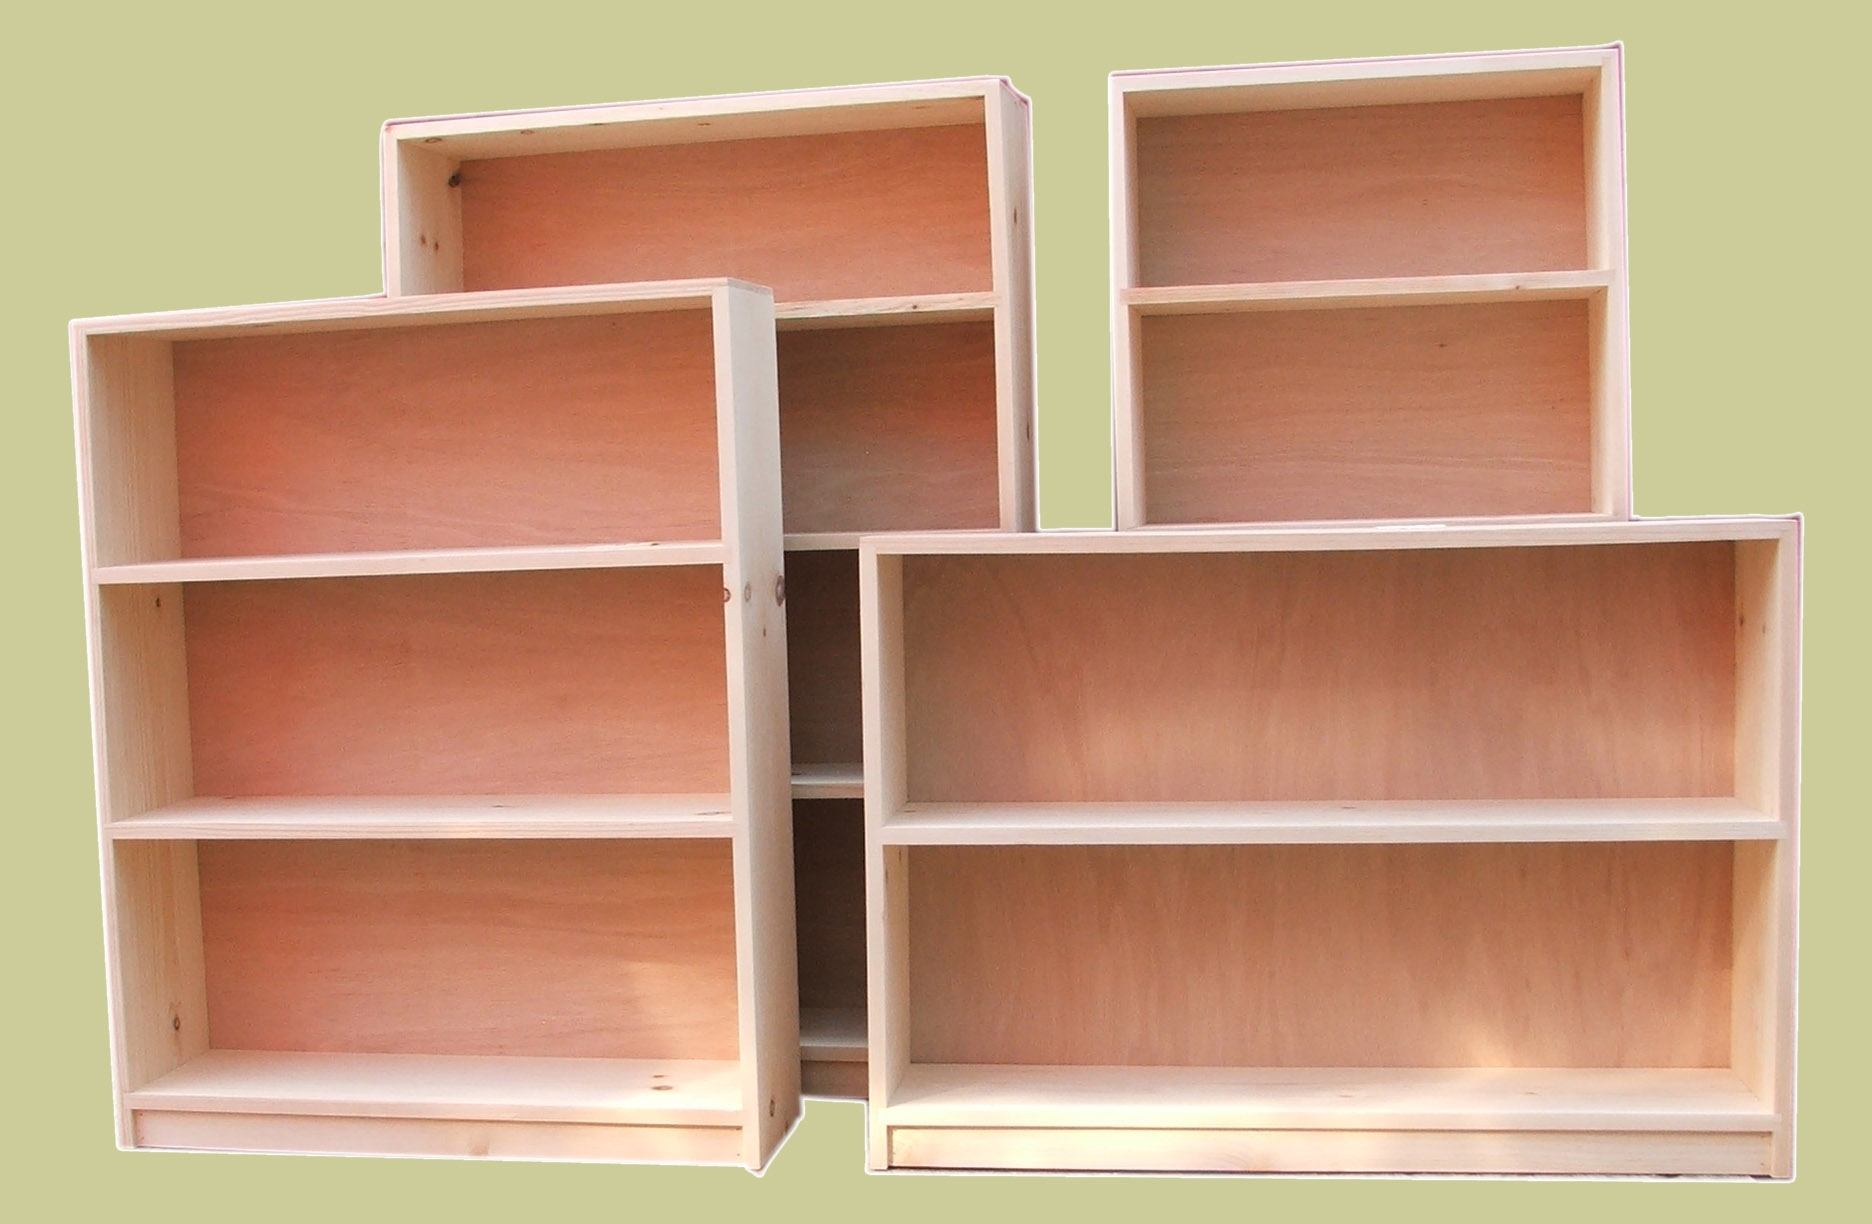 Pine Bookcases Intended For Well Known Pineses Or Bookshelves 14424Pinese Plans And Cabinets King Size (View 8 of 15)